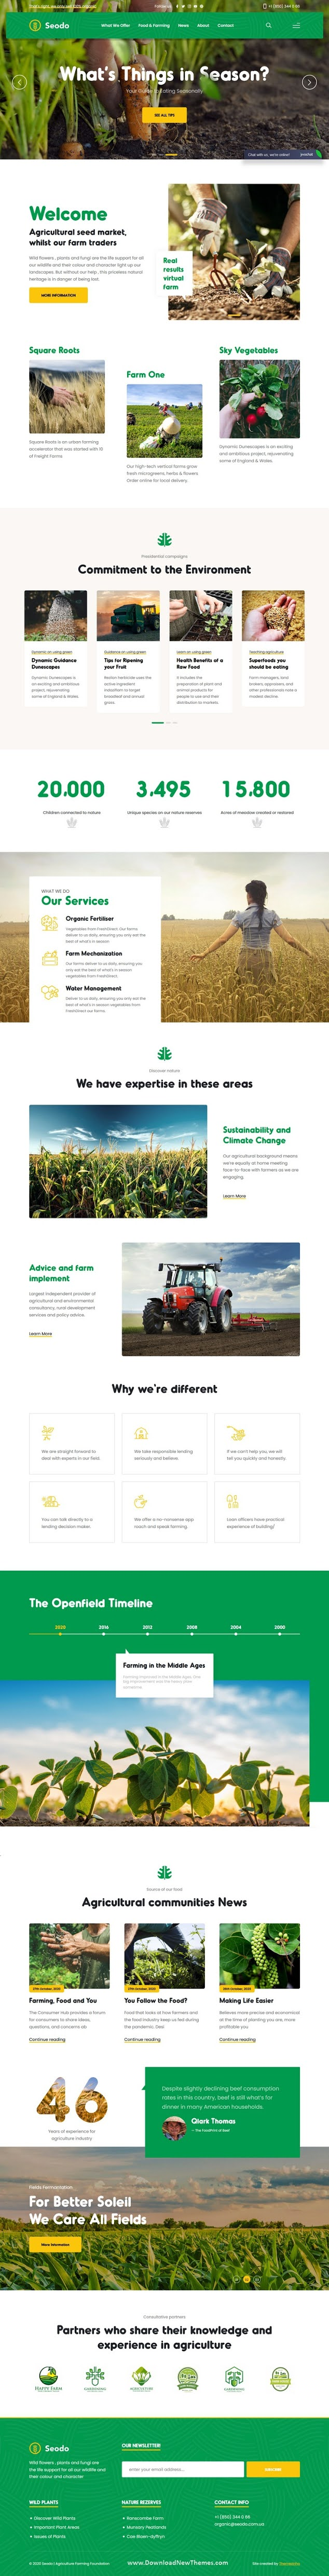 Agriculture Farming Foundation WordPress Theme